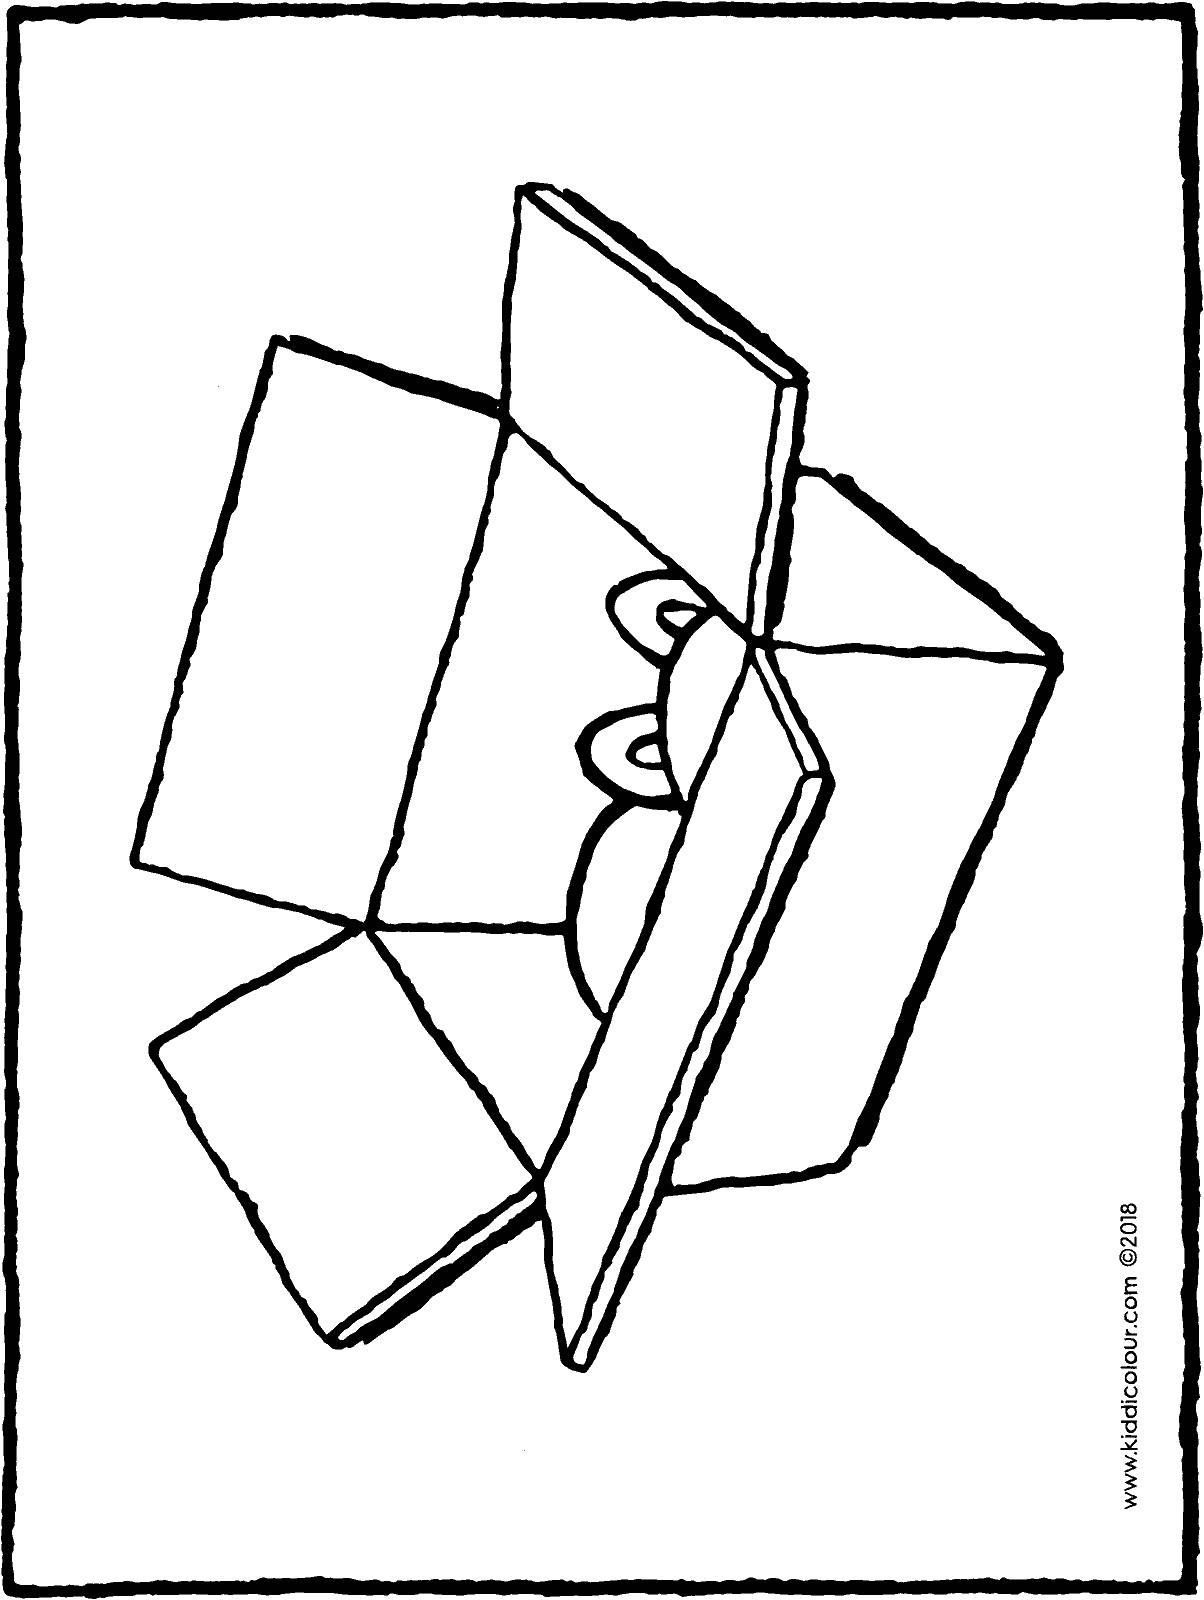 cardboard box colouring page drawing picture 01H